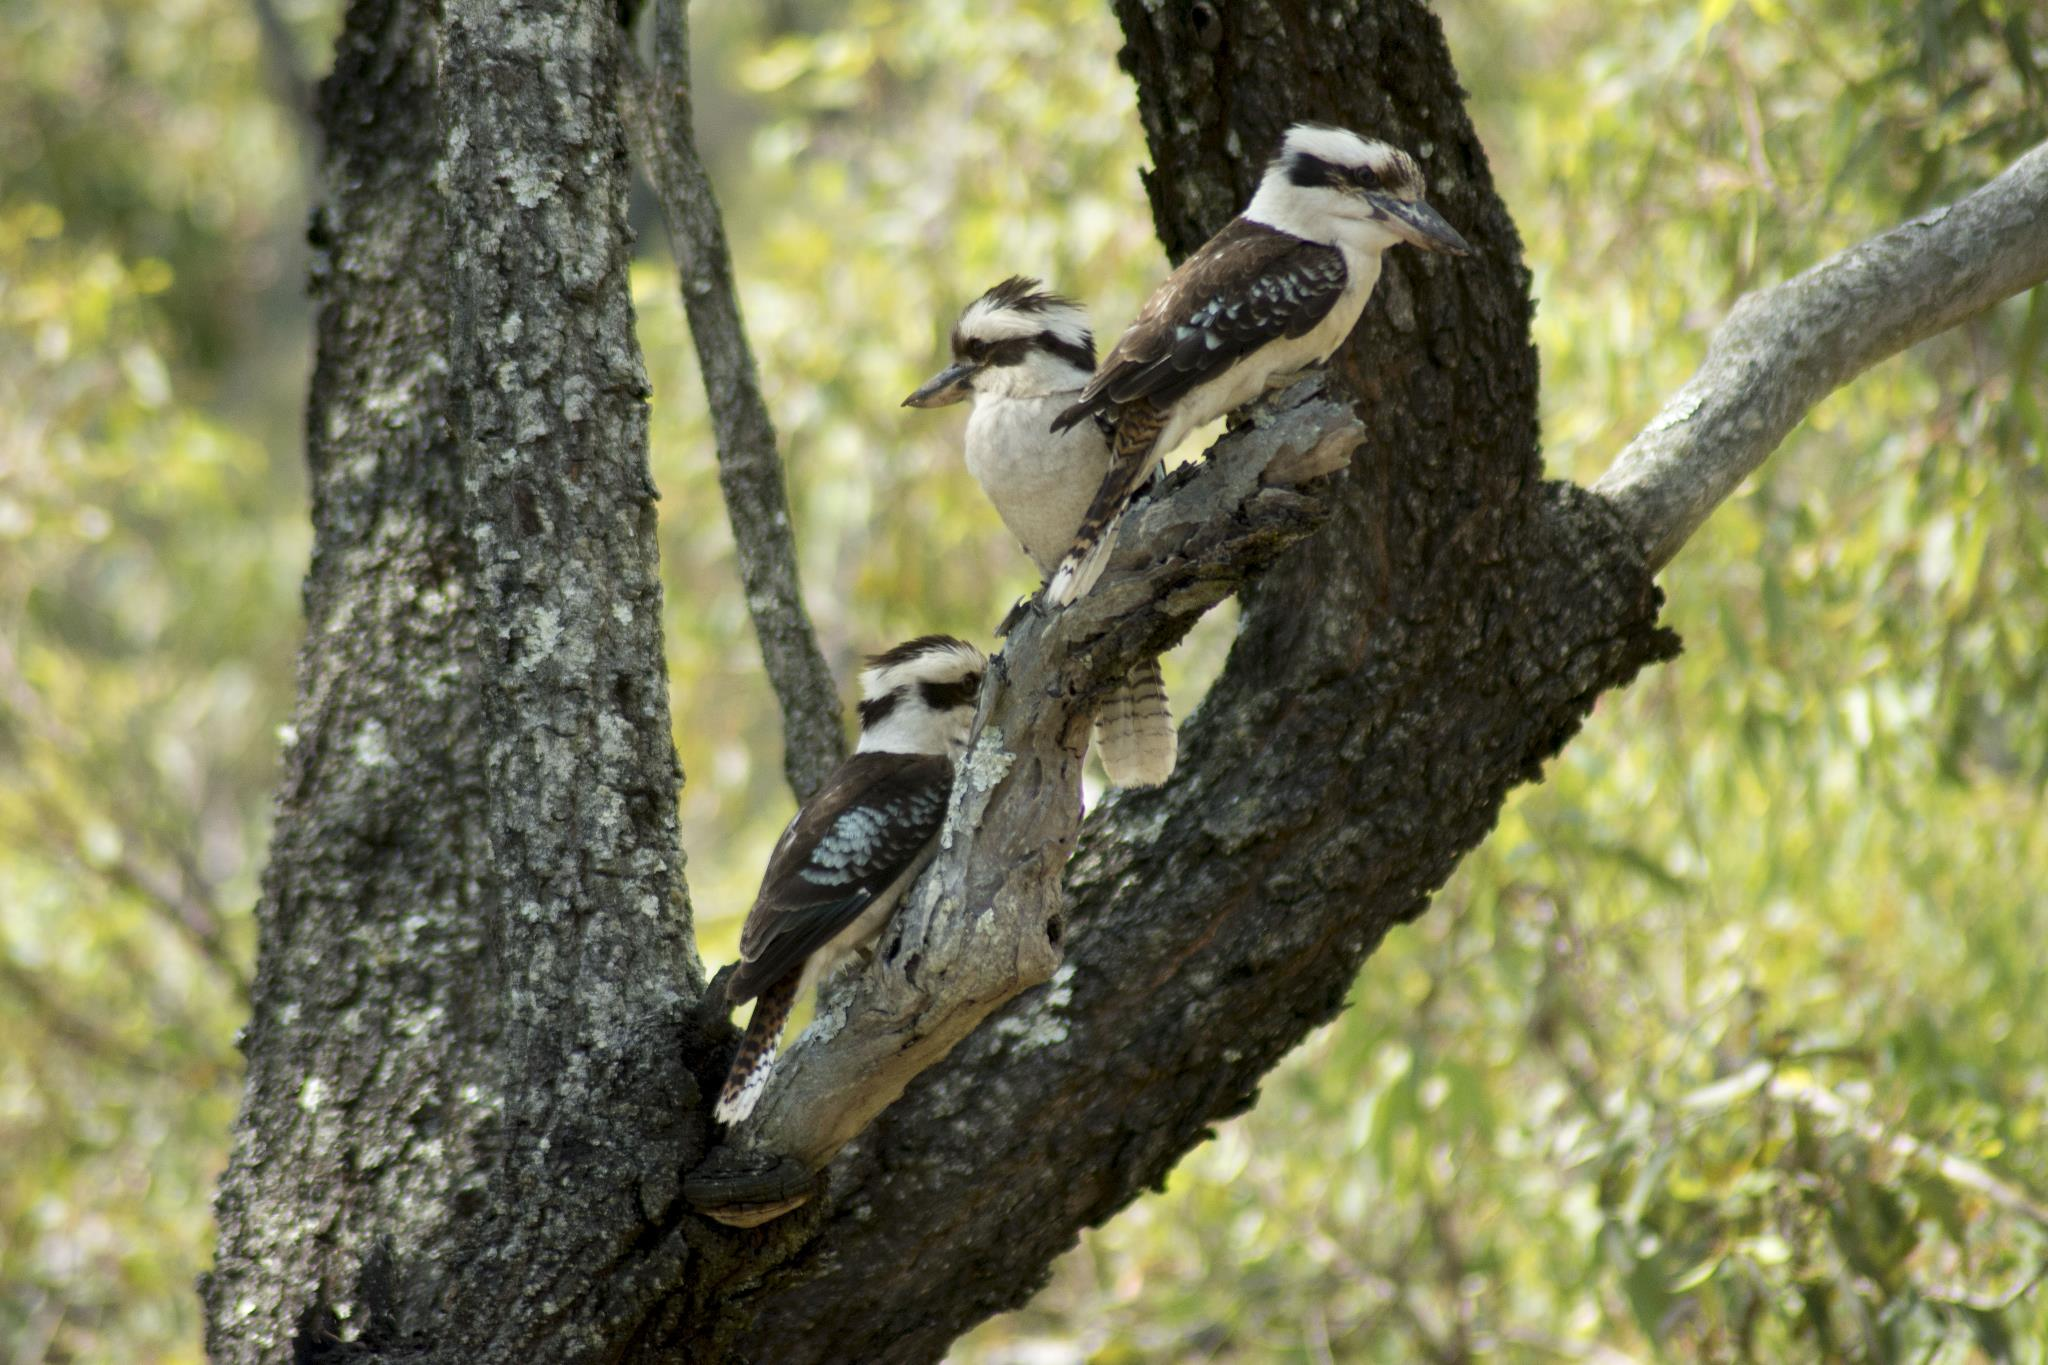 The local Laughing Kookaburra family